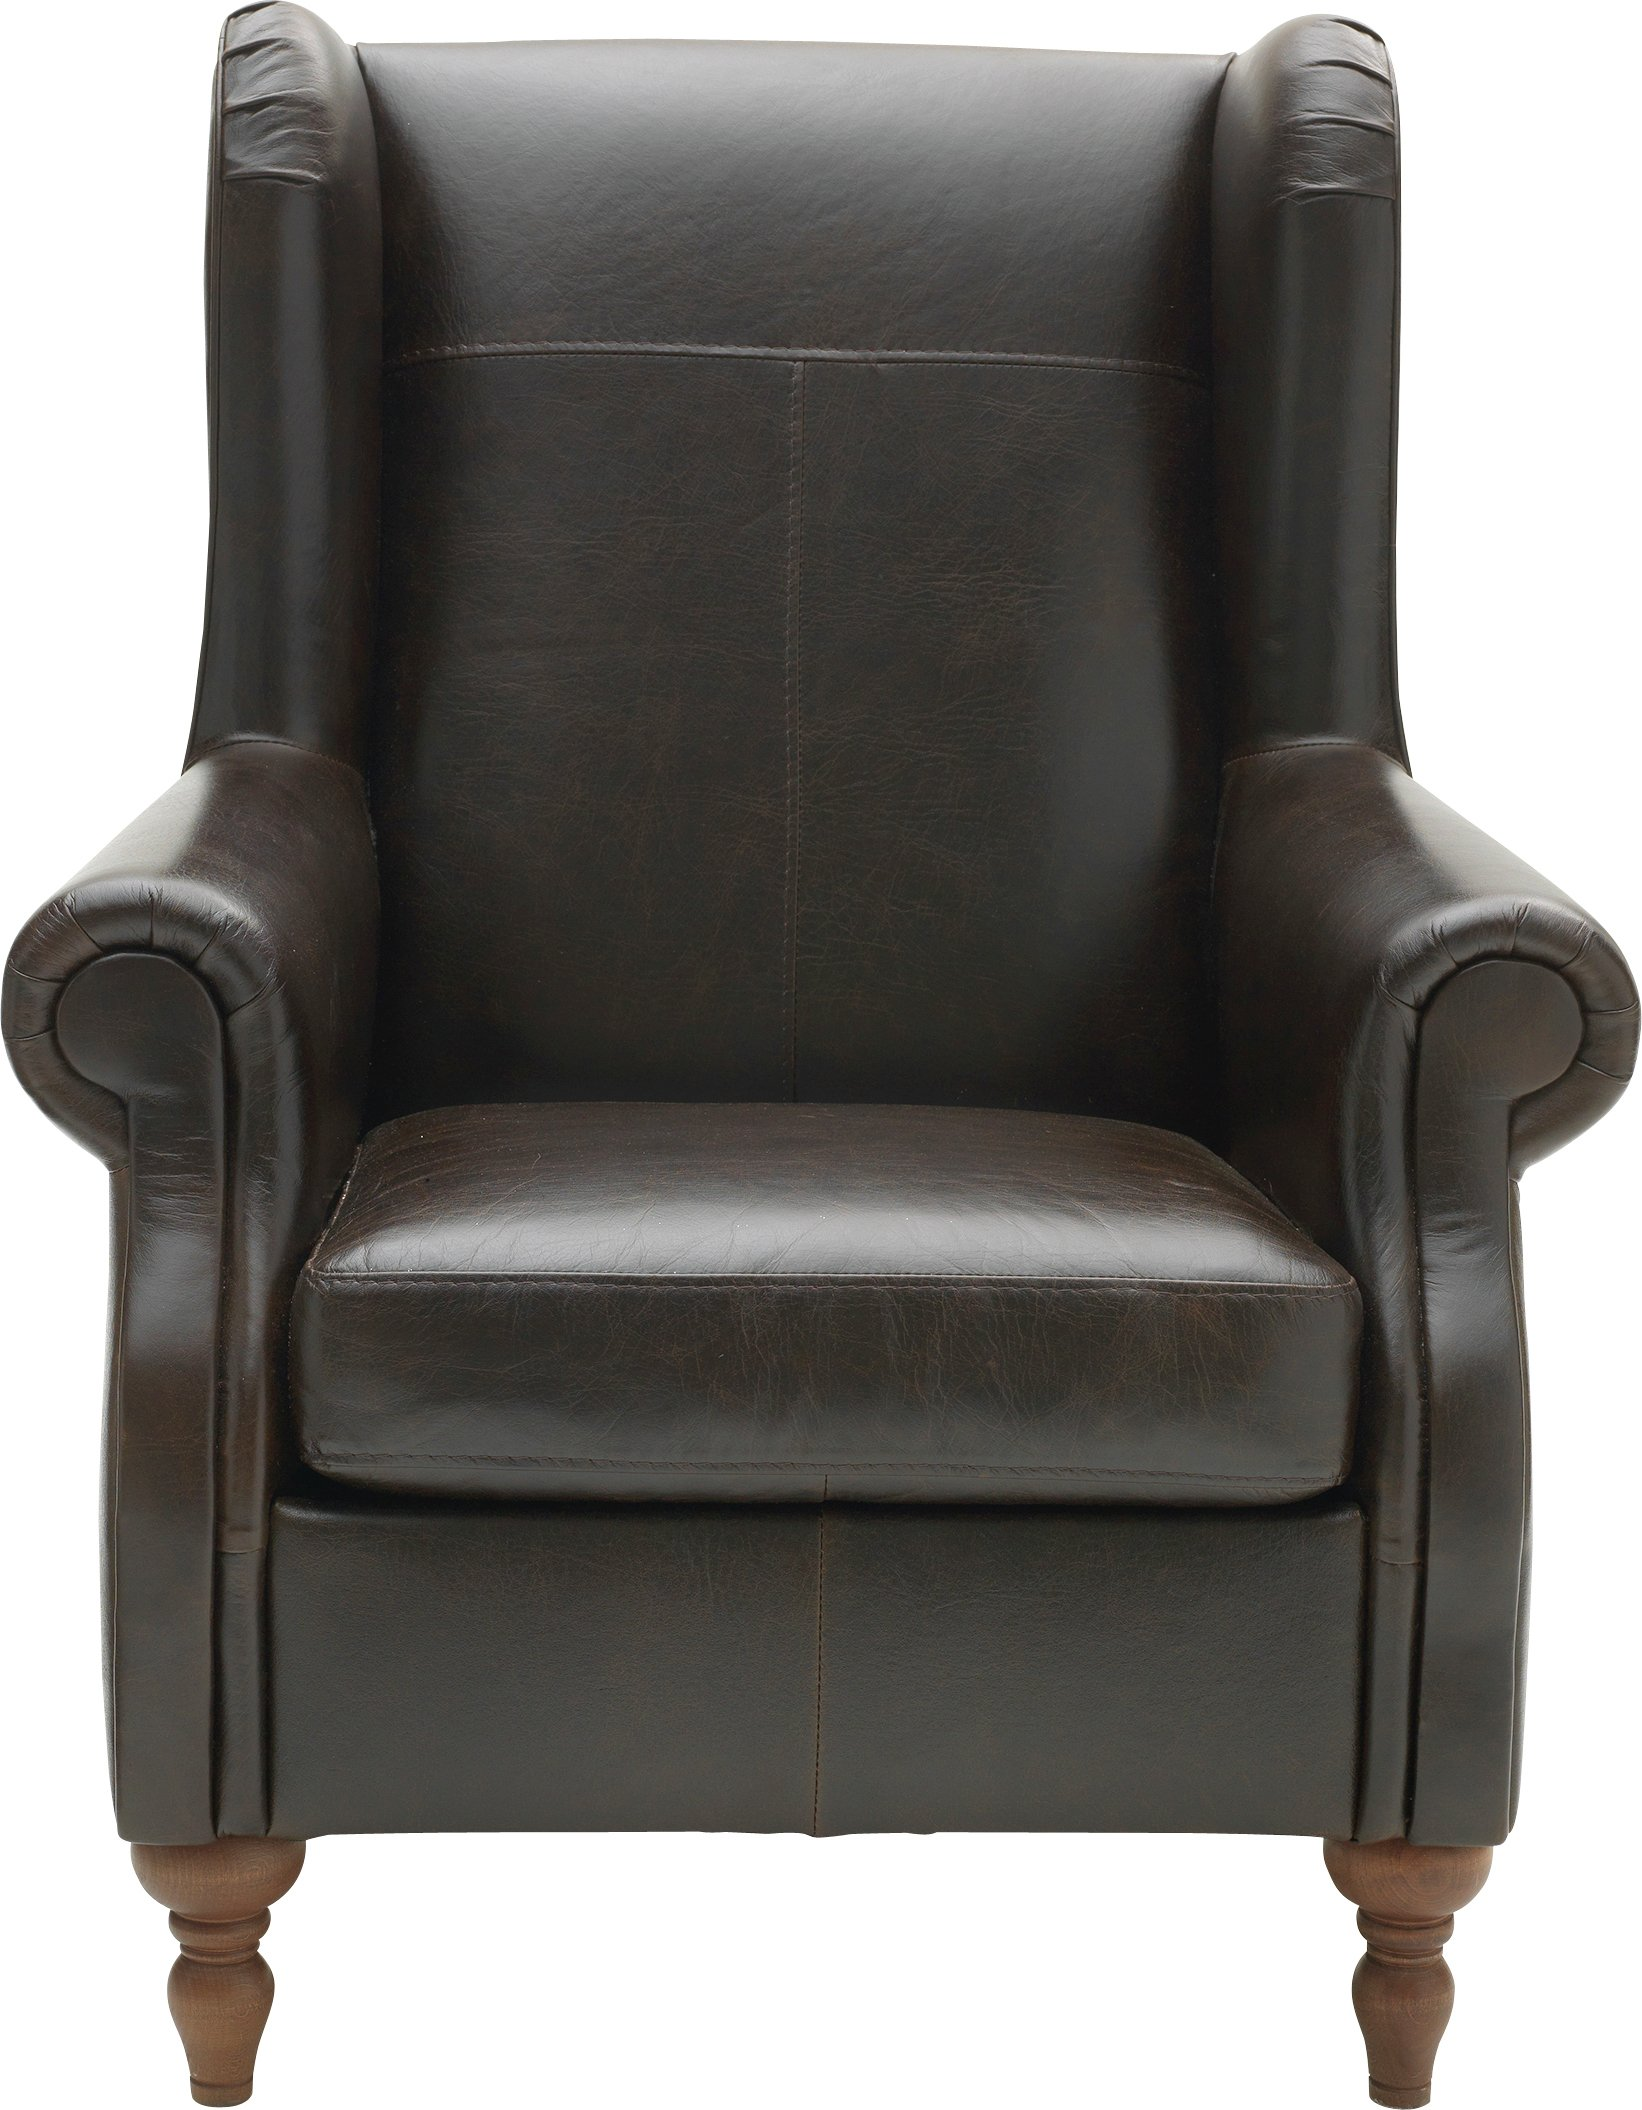 Argos Home Argyll Leather High Back Chair - Dark Brown